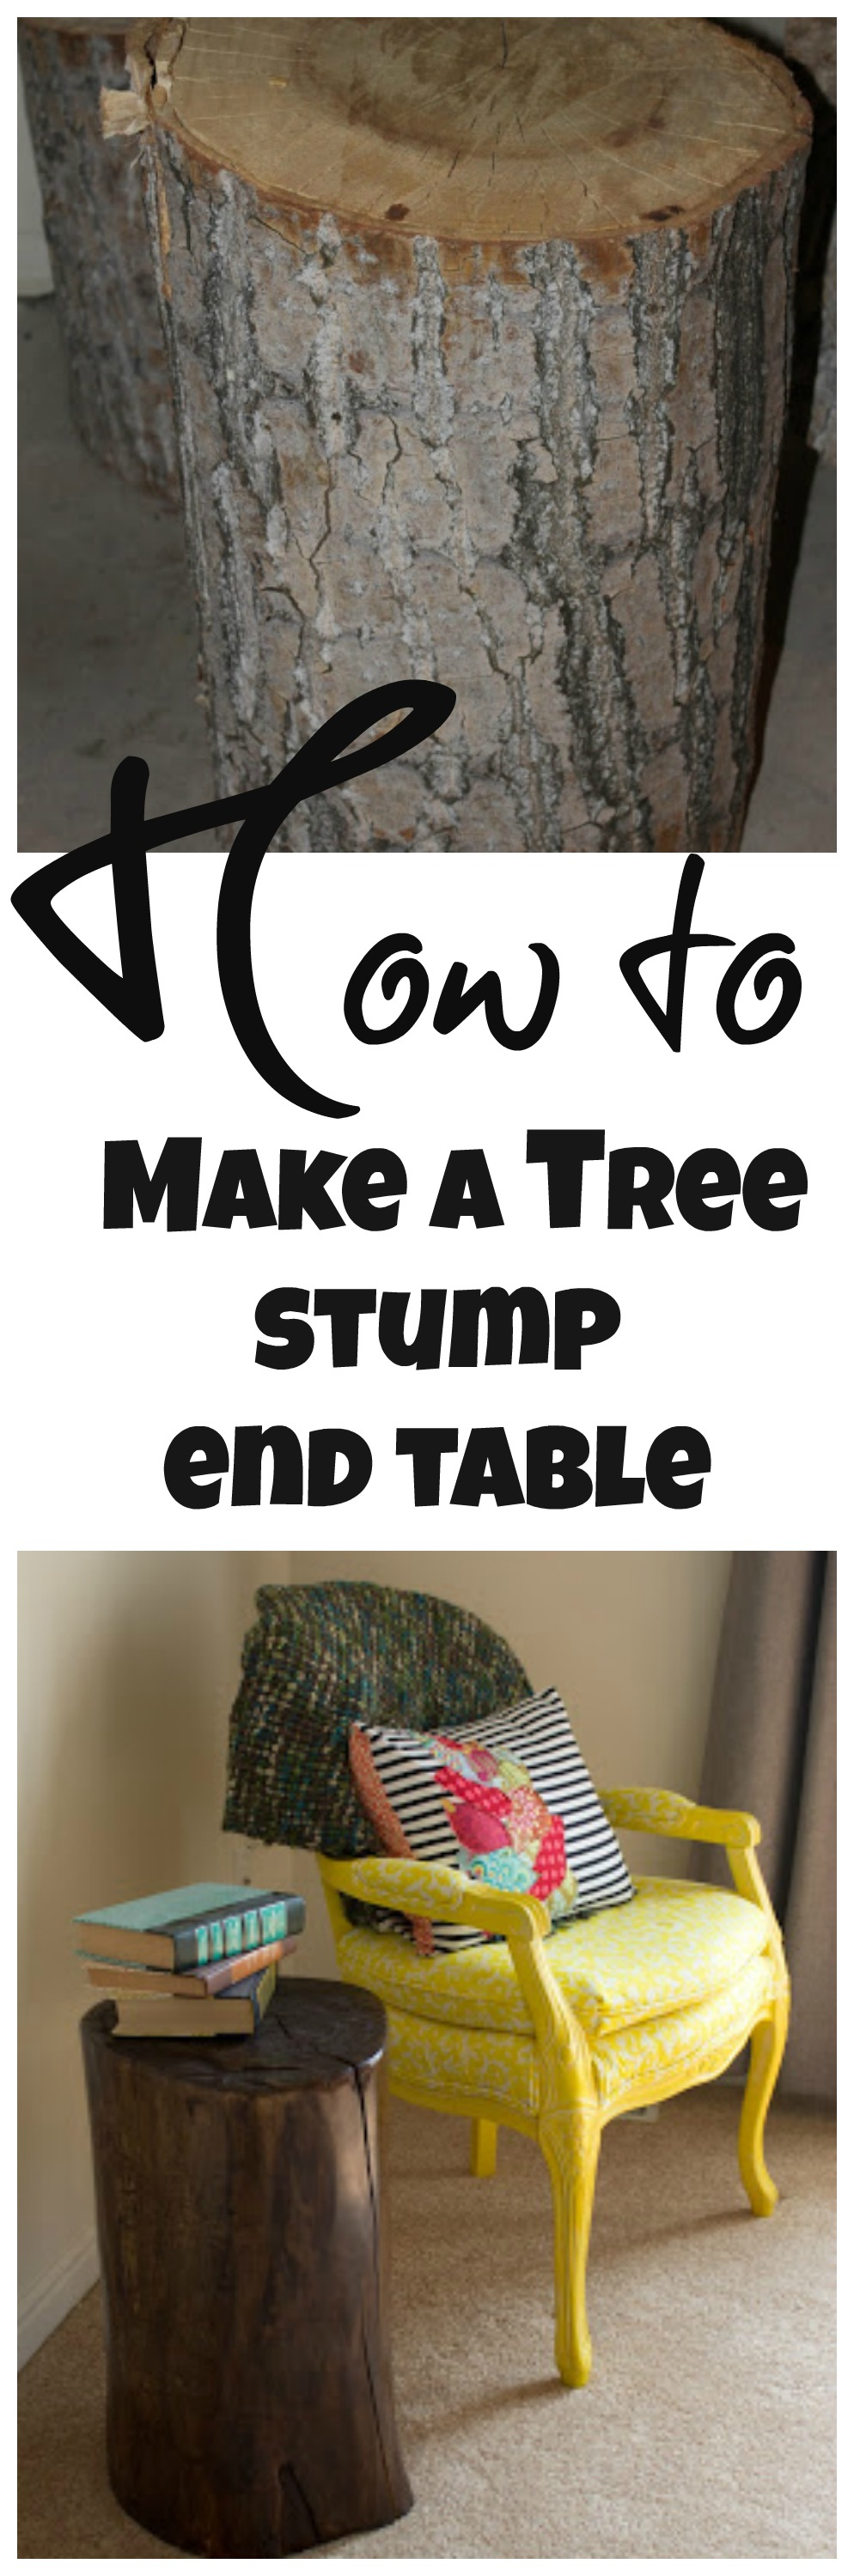 How To Make End Tables Out Of Tree Stumps – Brad F Taylor